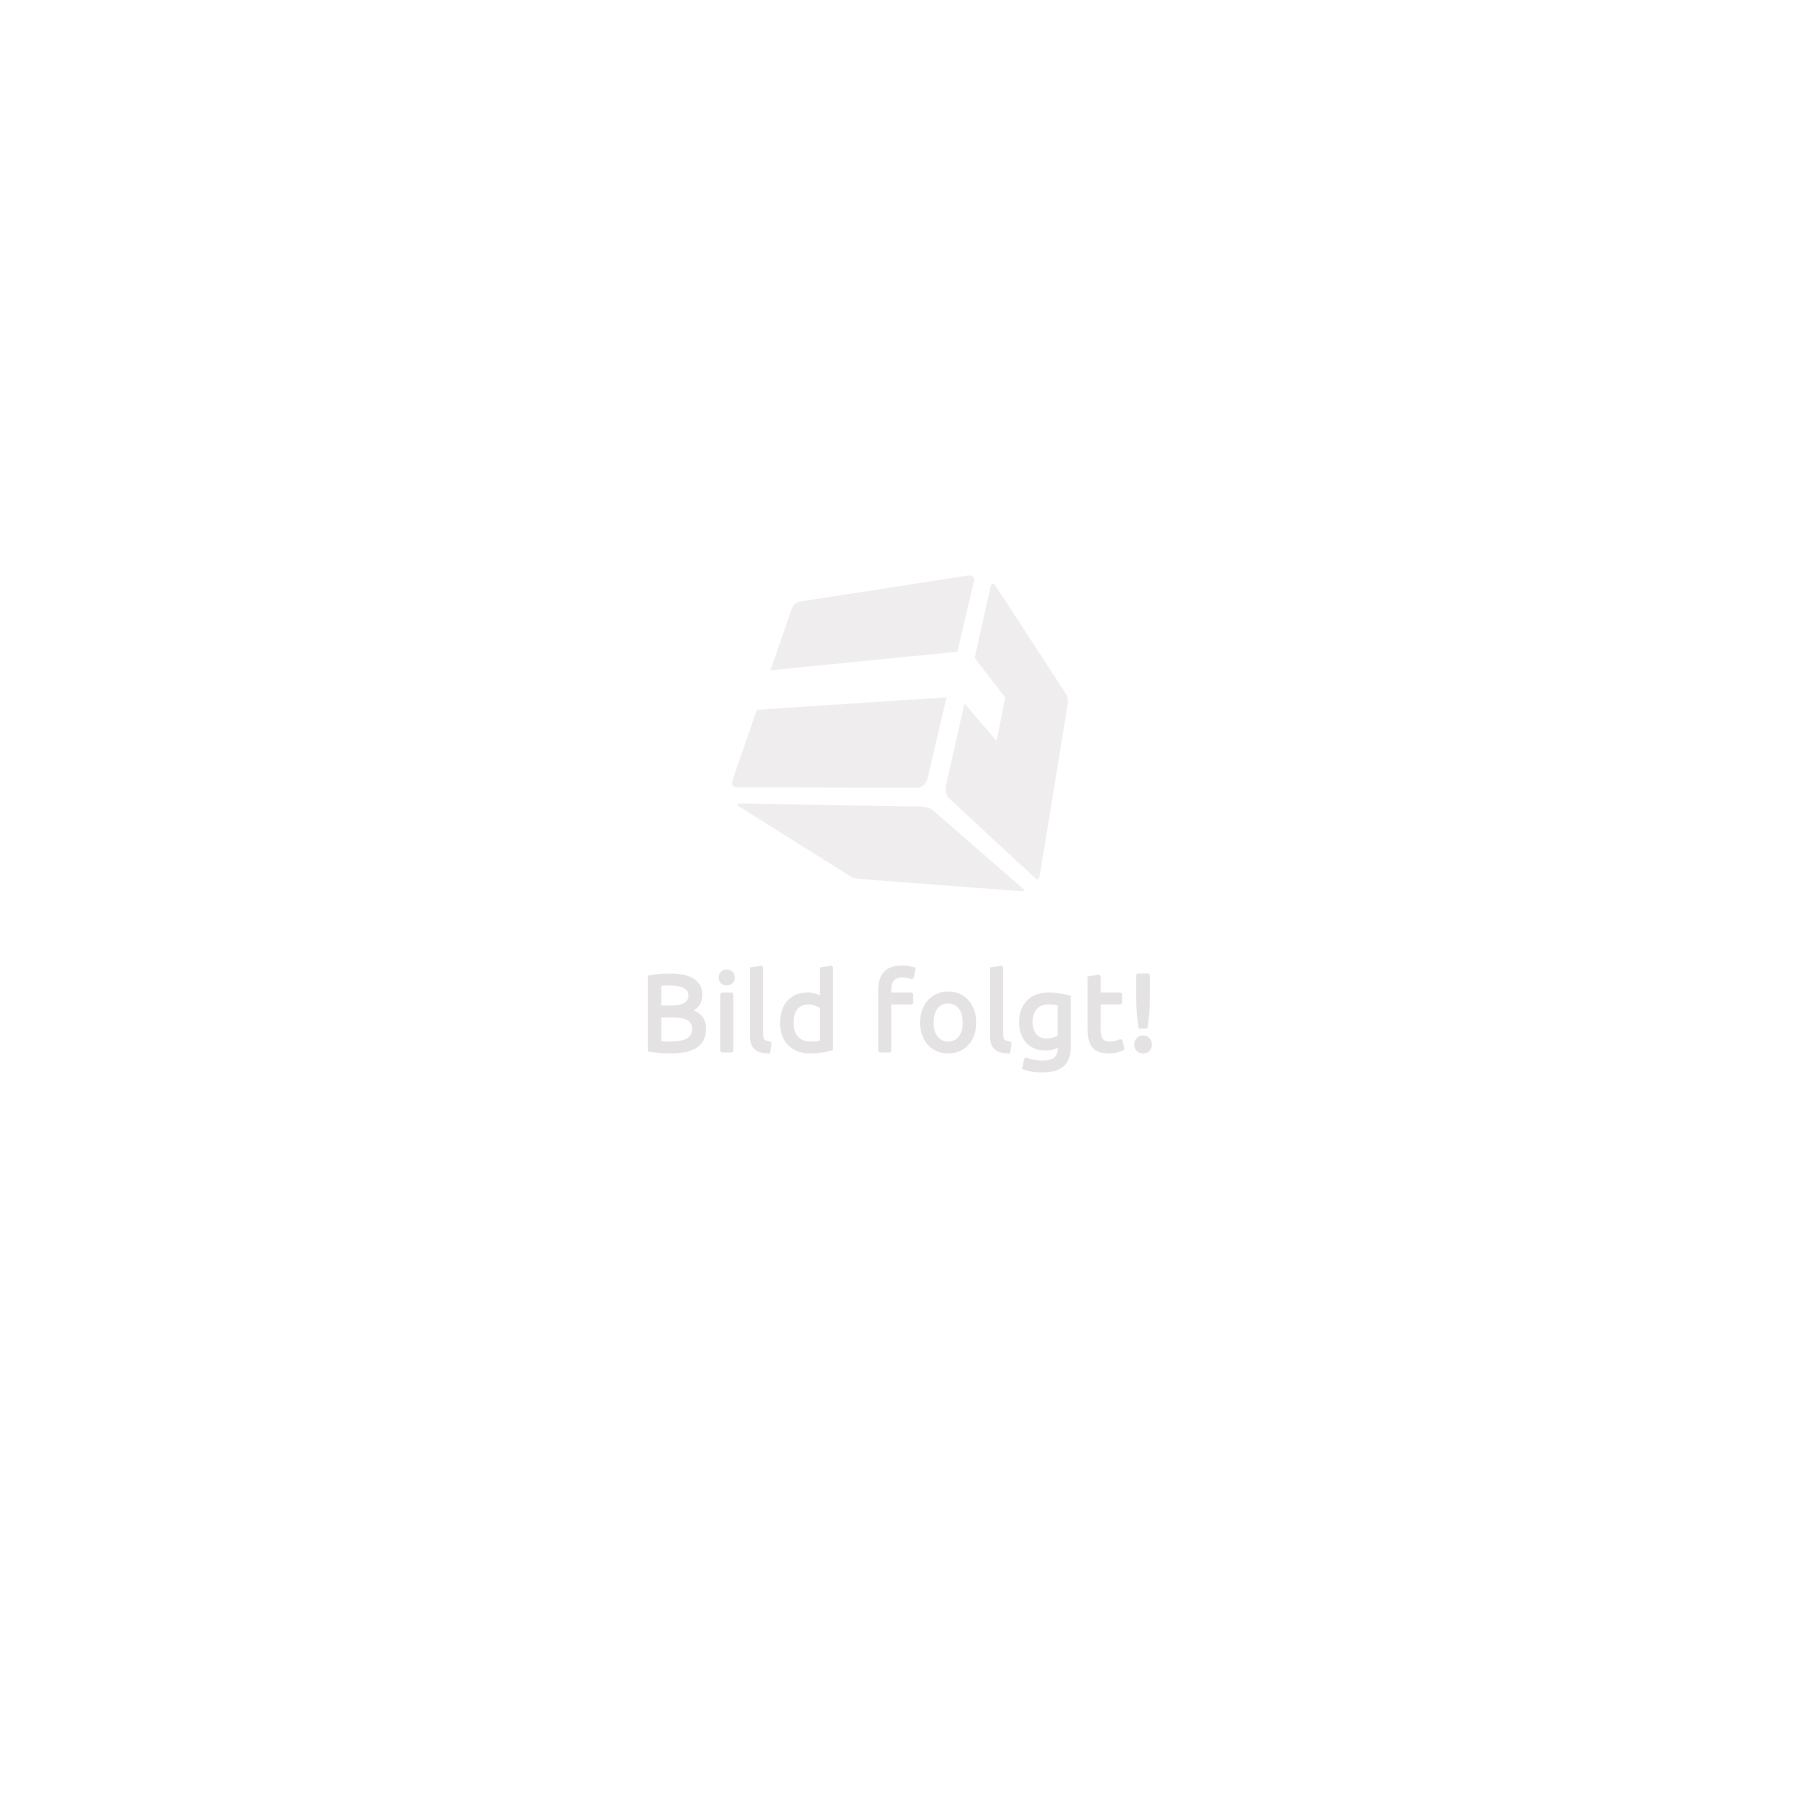 Filing cabinet with 3 compartments black